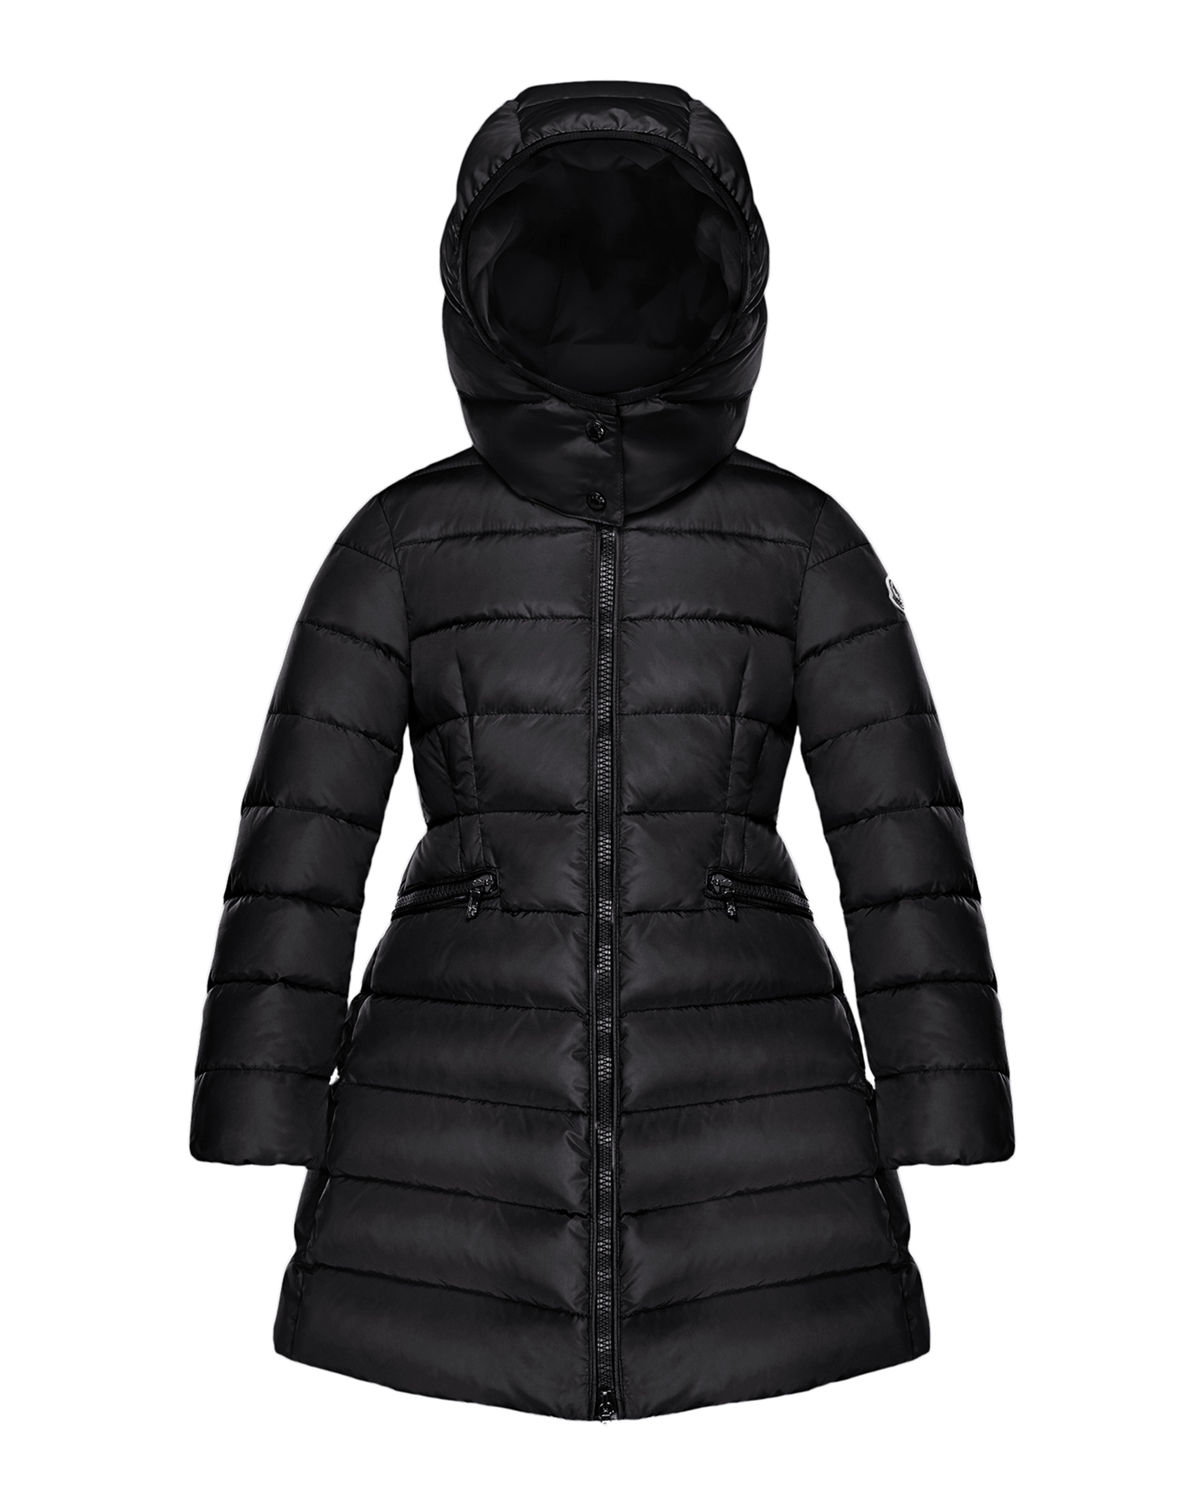 Moncler CHARPAL LONG PUFFER COAT WITH DETACHABLE HOOD